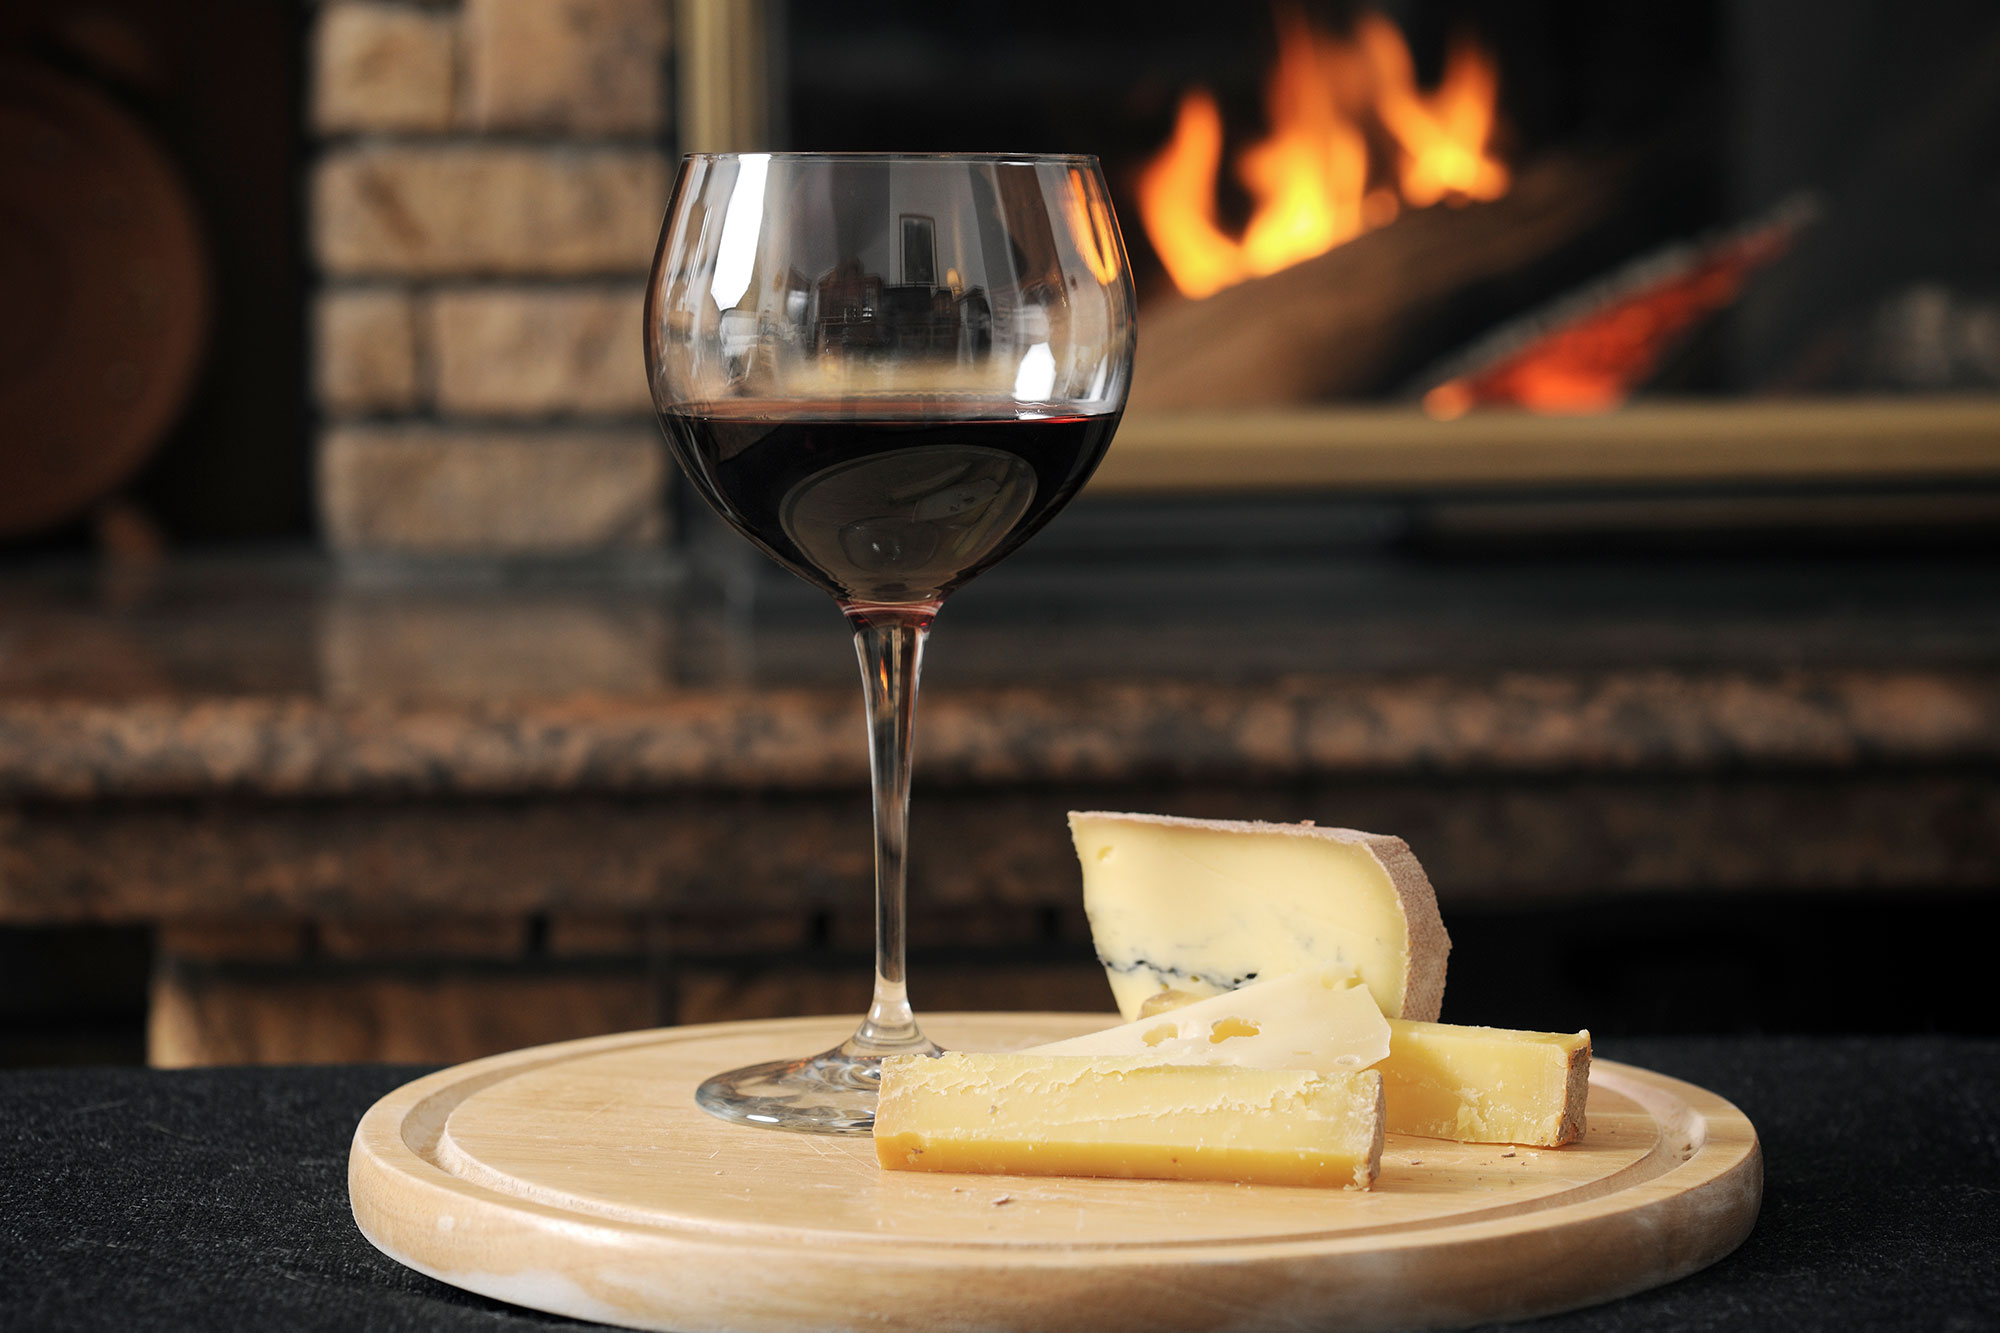 Close-up of wine with cheese slices served on wooden tray against fireplace